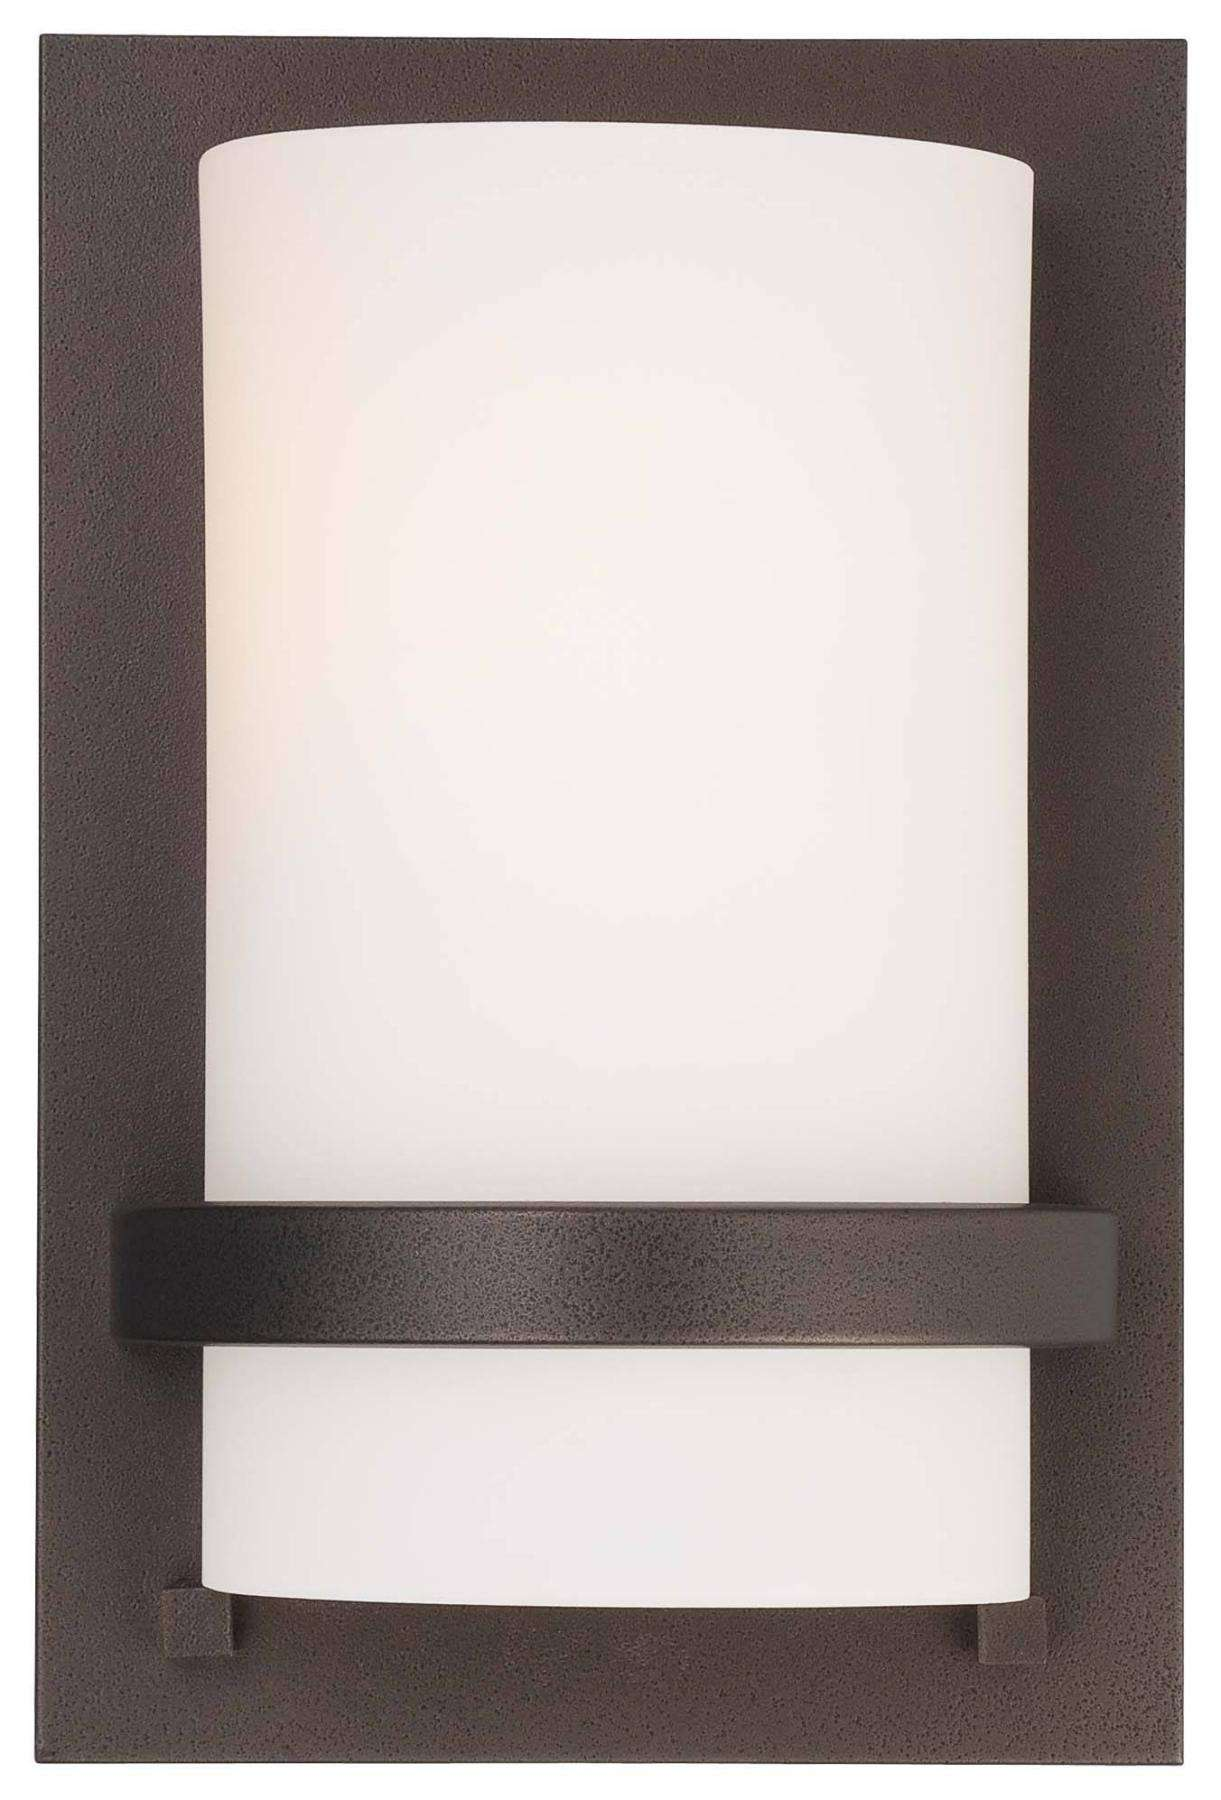 Minka Lavery 1 Light Wall Sconce In Smoked Iron Finish W/Etched Opal Glass